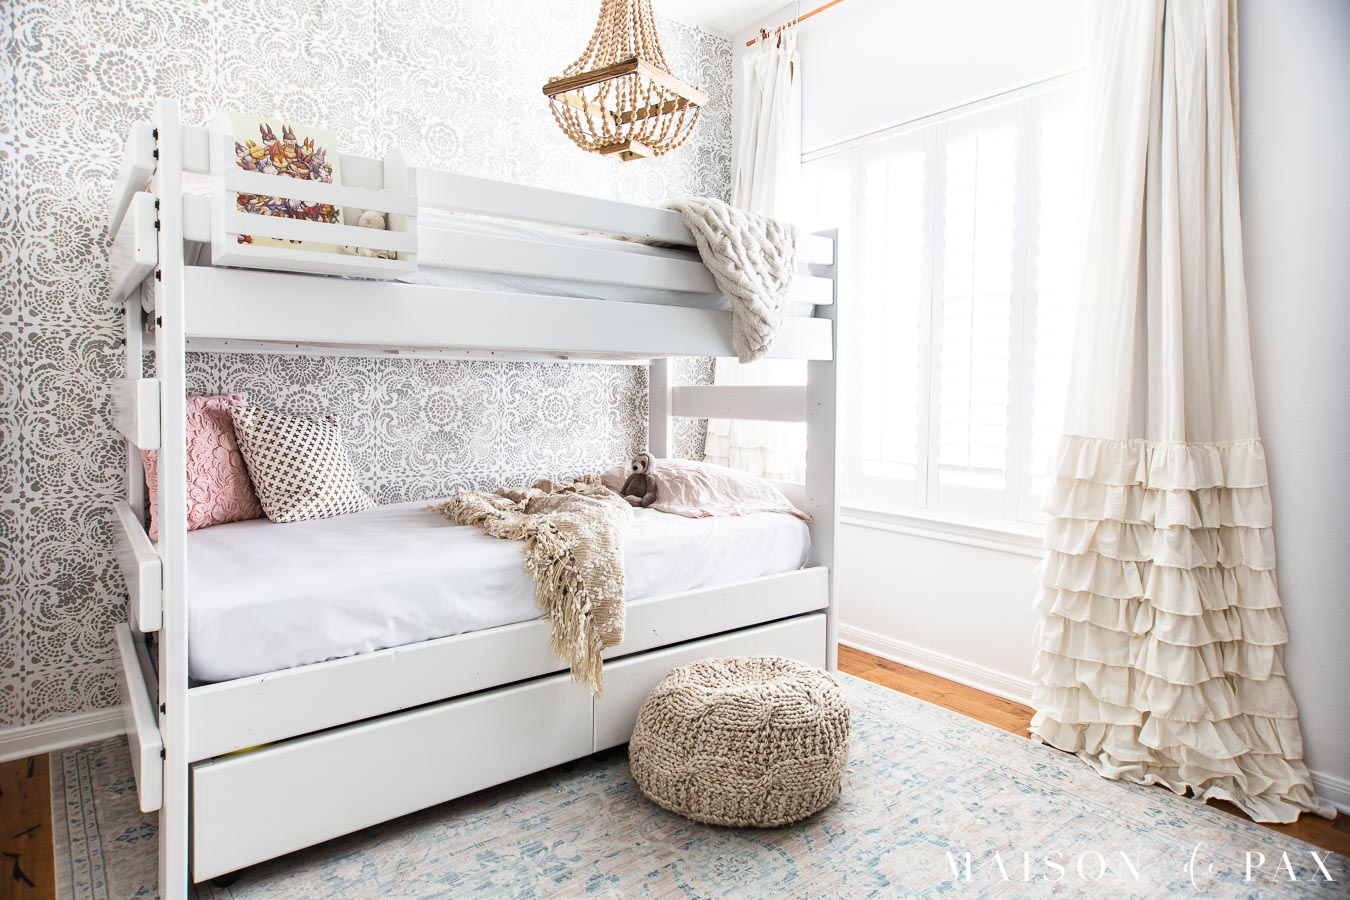 girl's room with white bunk bed, stenciled wall, ruffled curtians | Maison de Pax